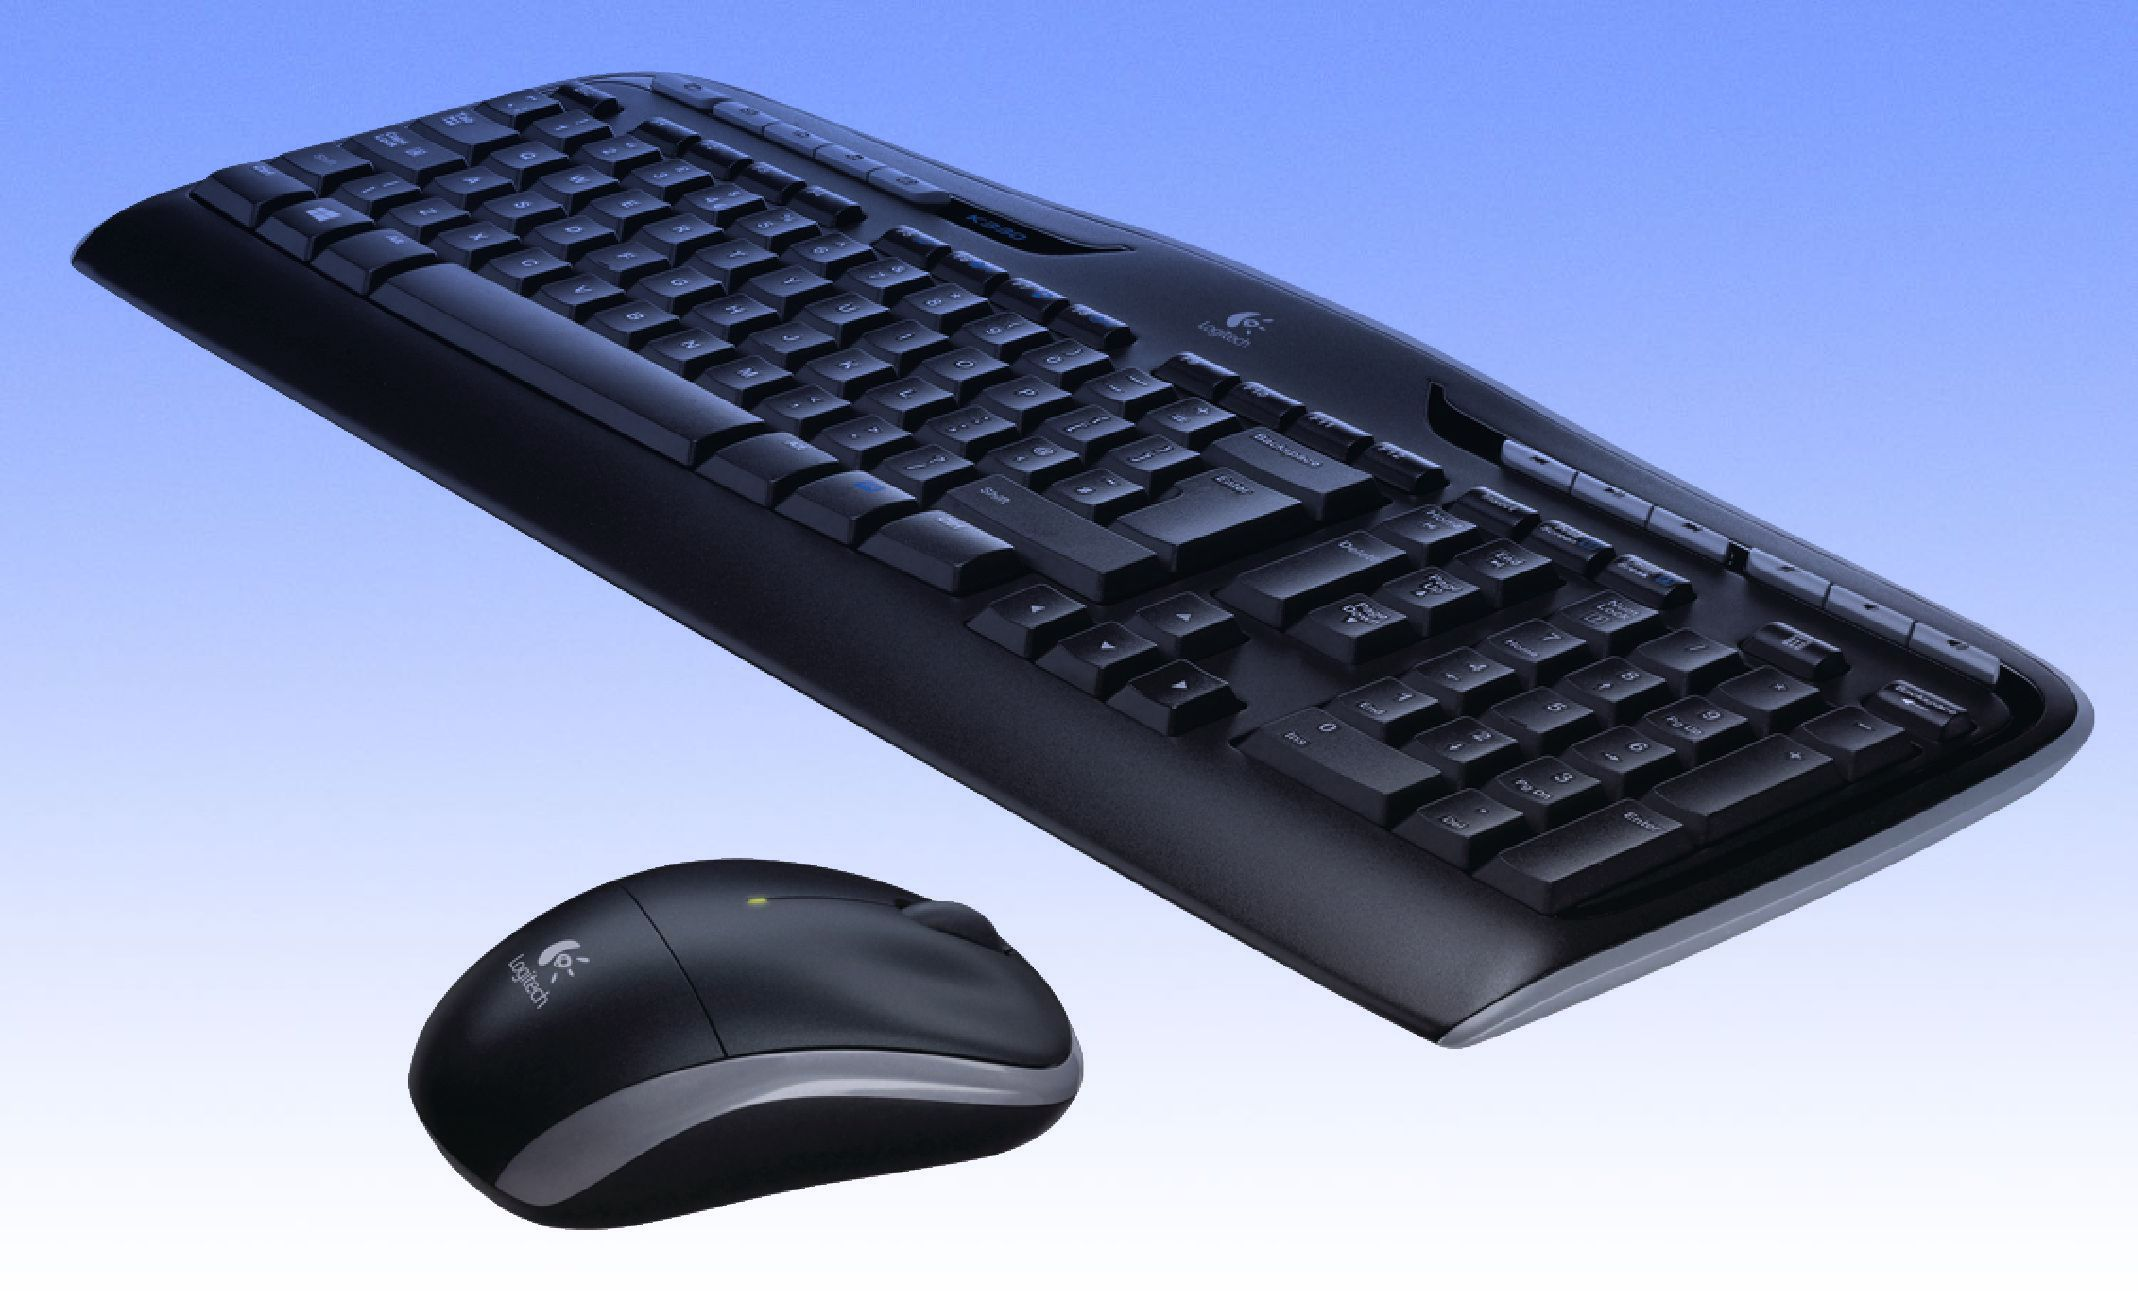 Best Mouse And Keyboard 2018